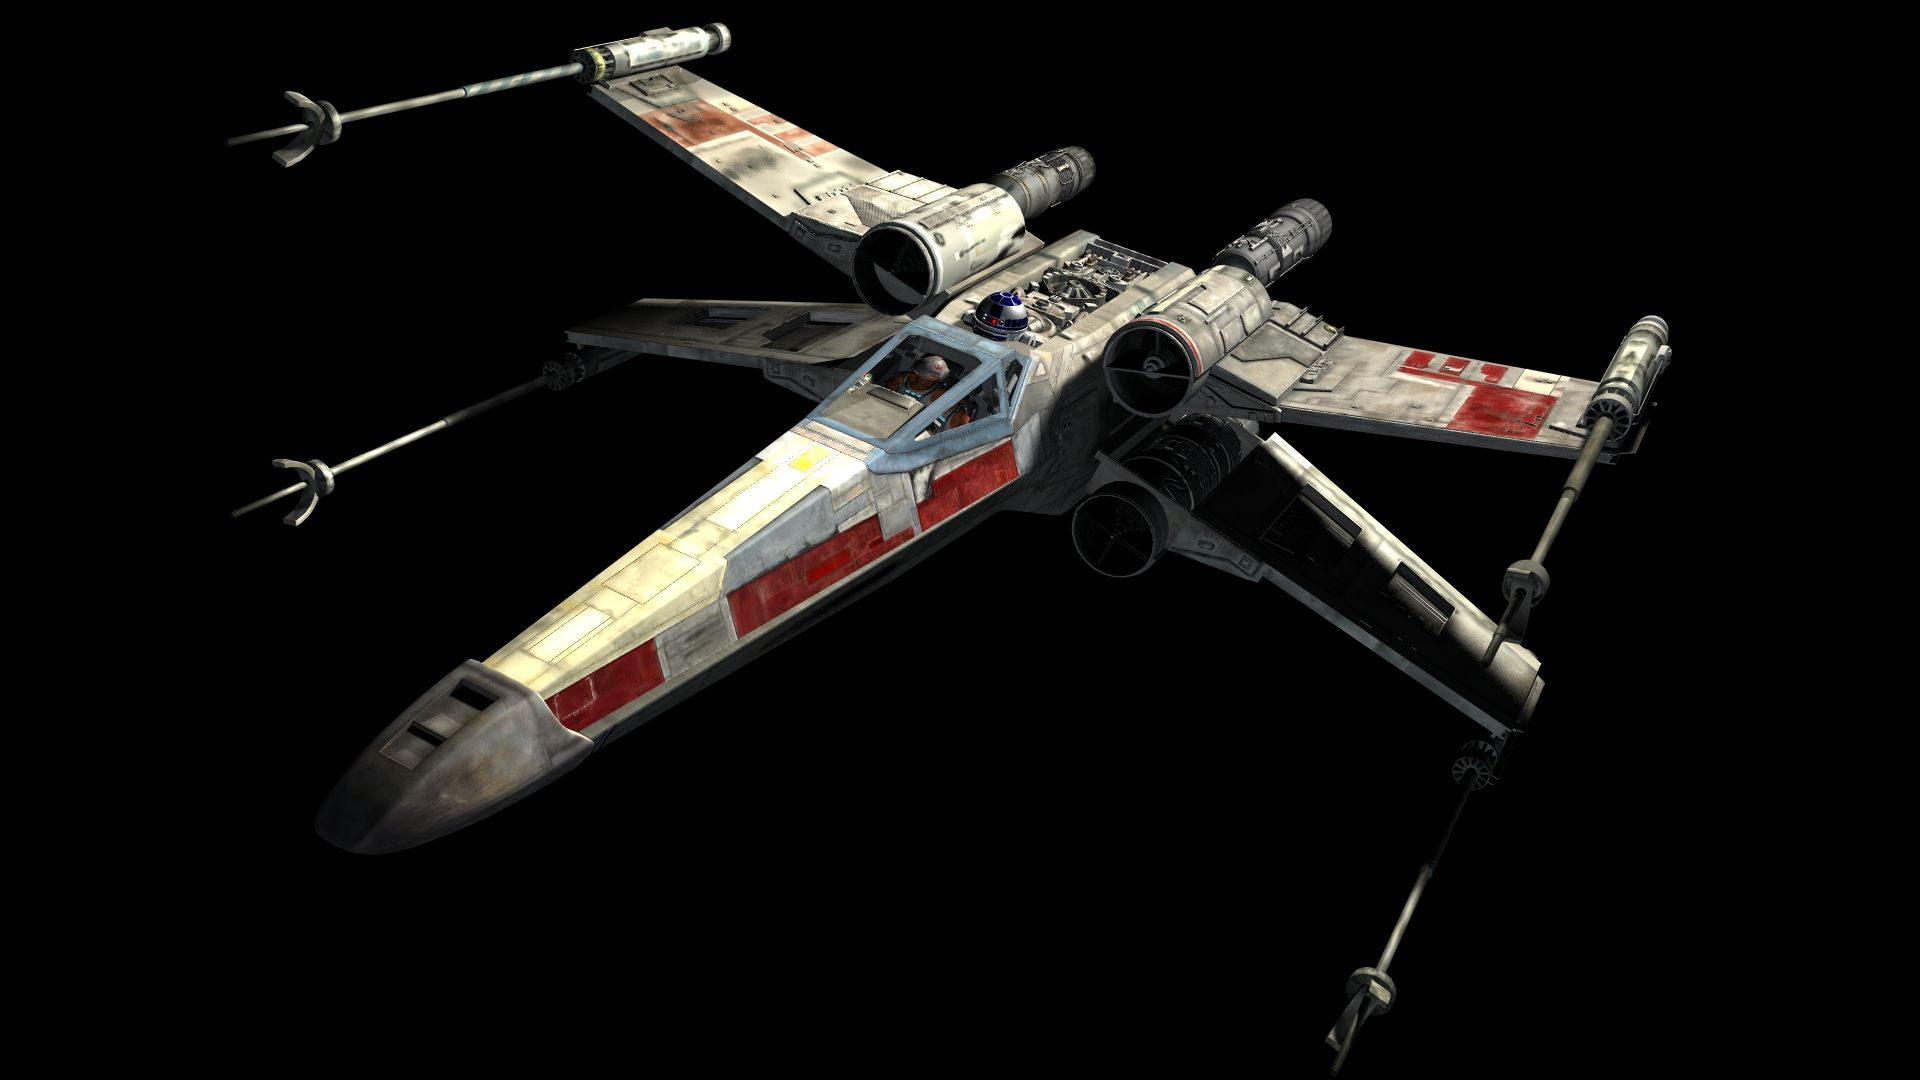 The rebel X Wing fighter.